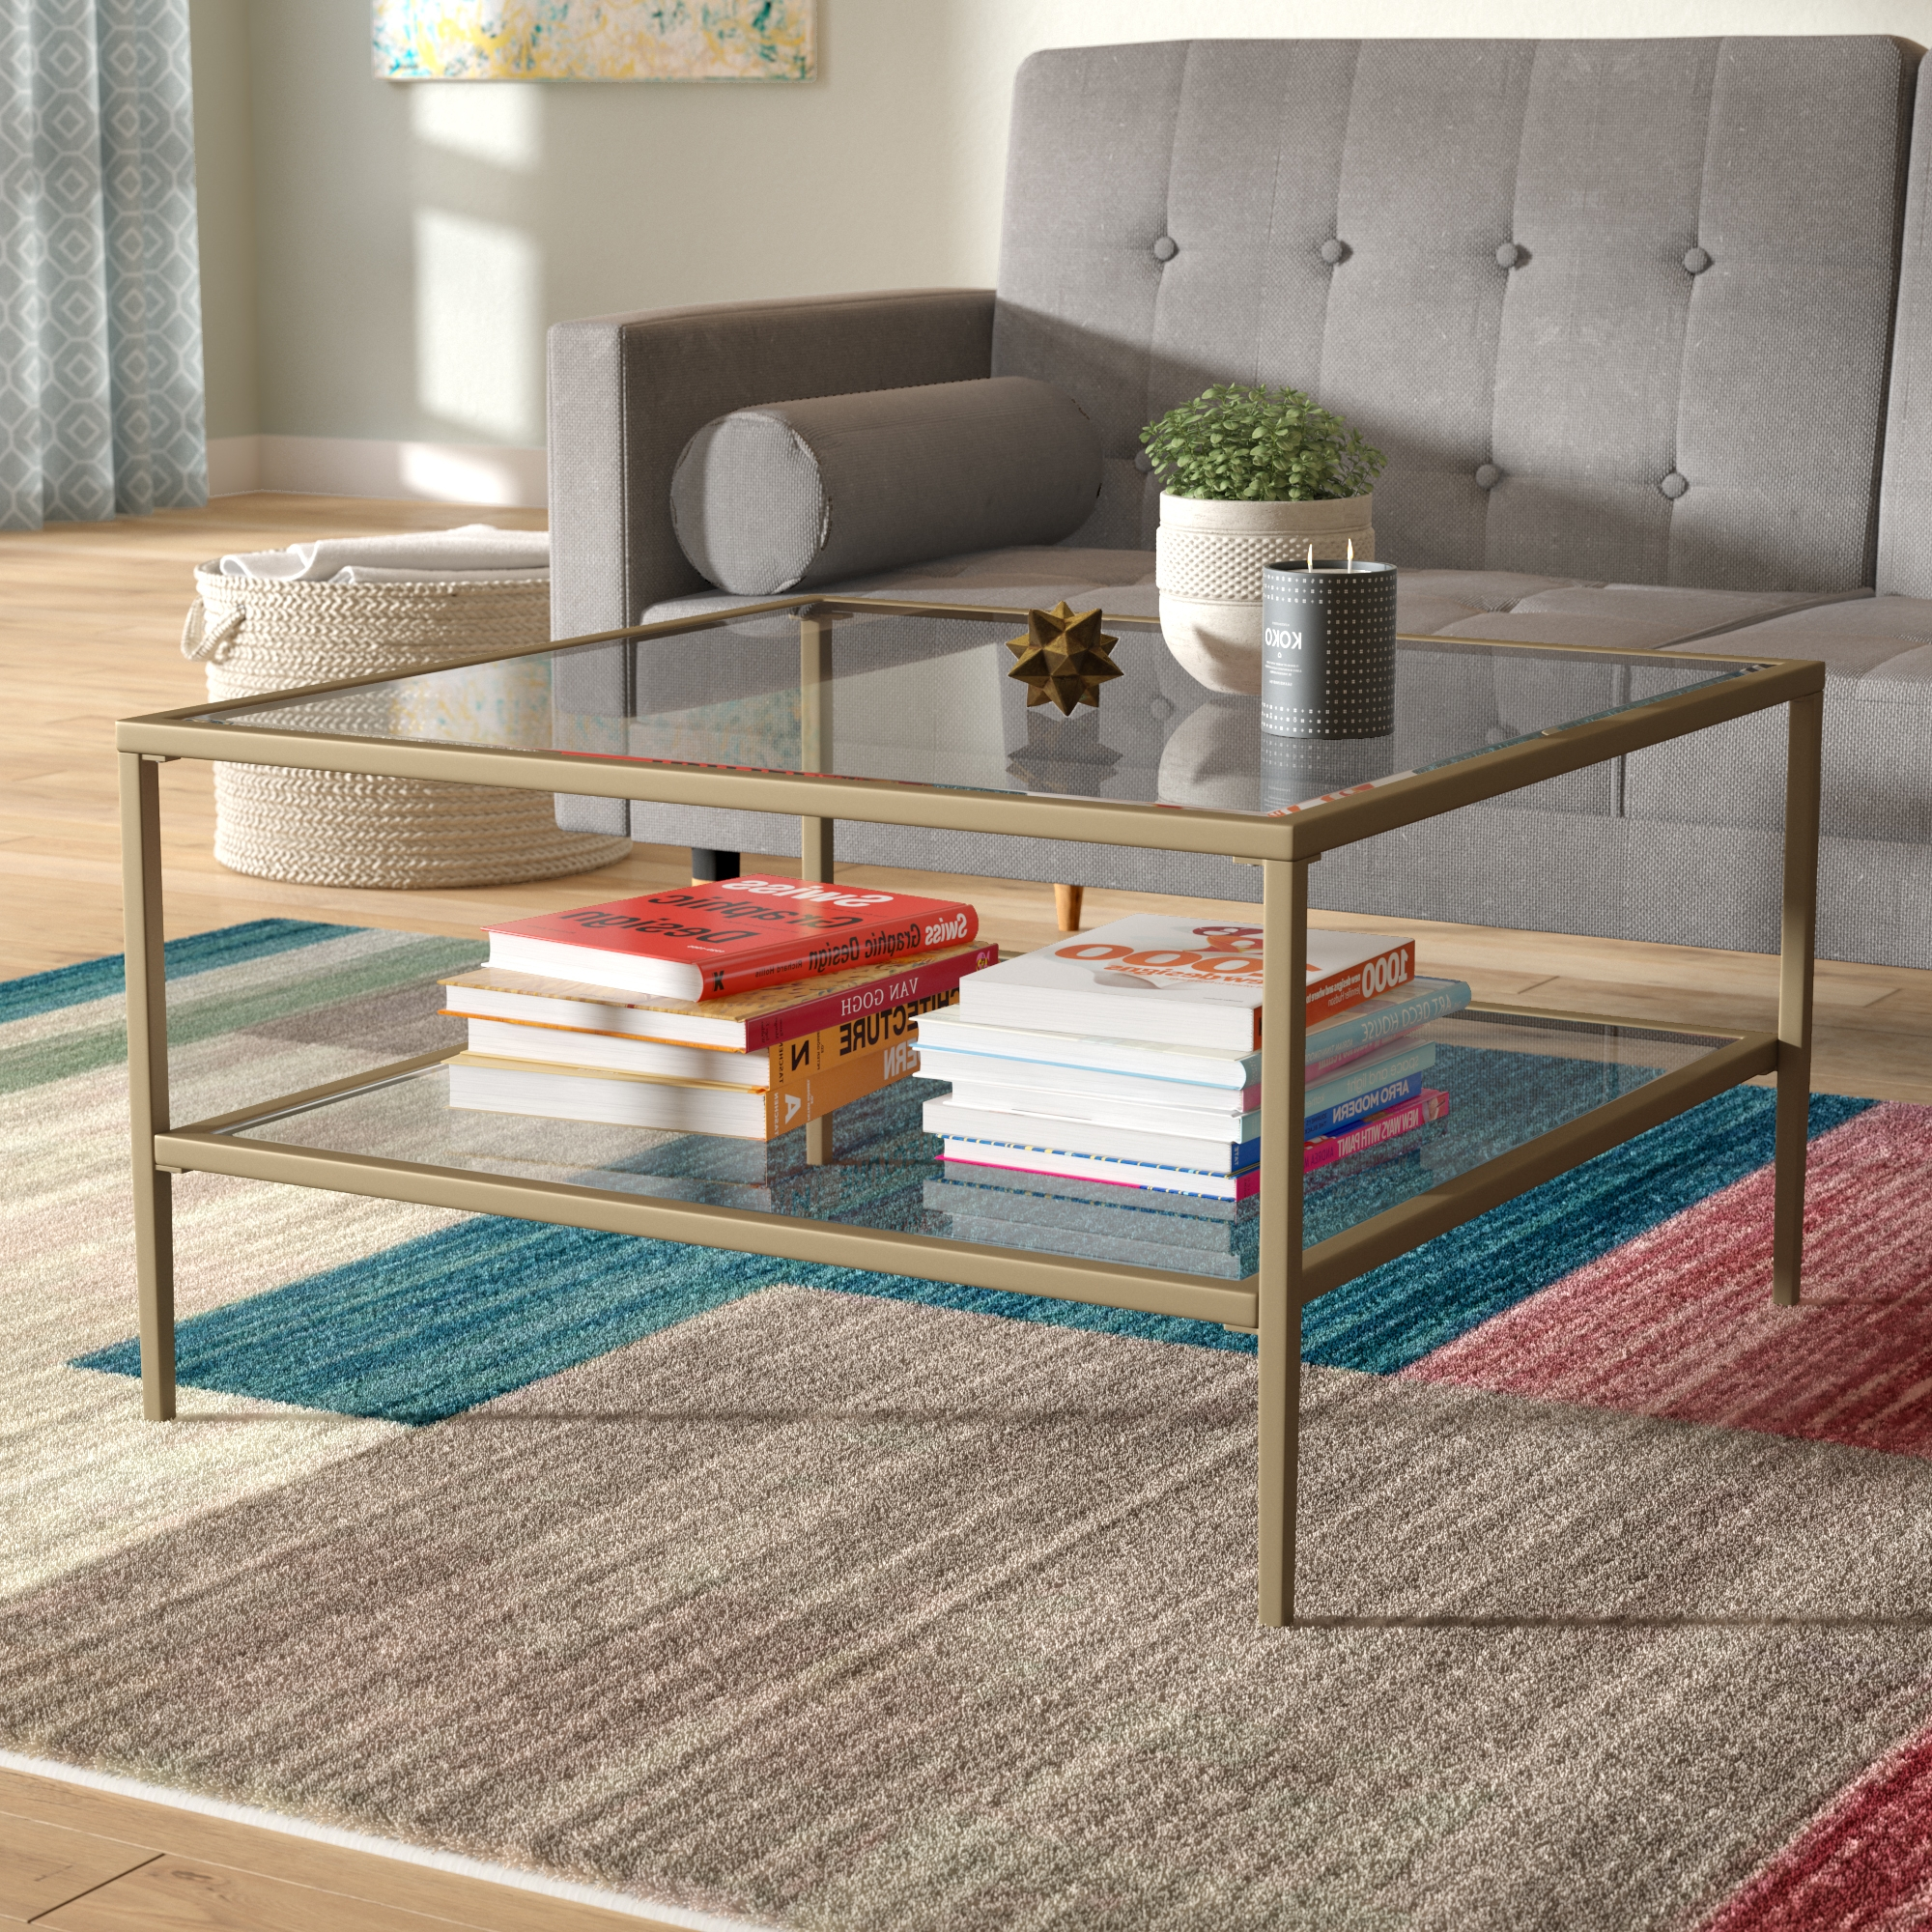 Preferred Grant Lift Top Cocktail Tables With Casters For Accent Tables – Small Tables You'll Love (View 20 of 20)